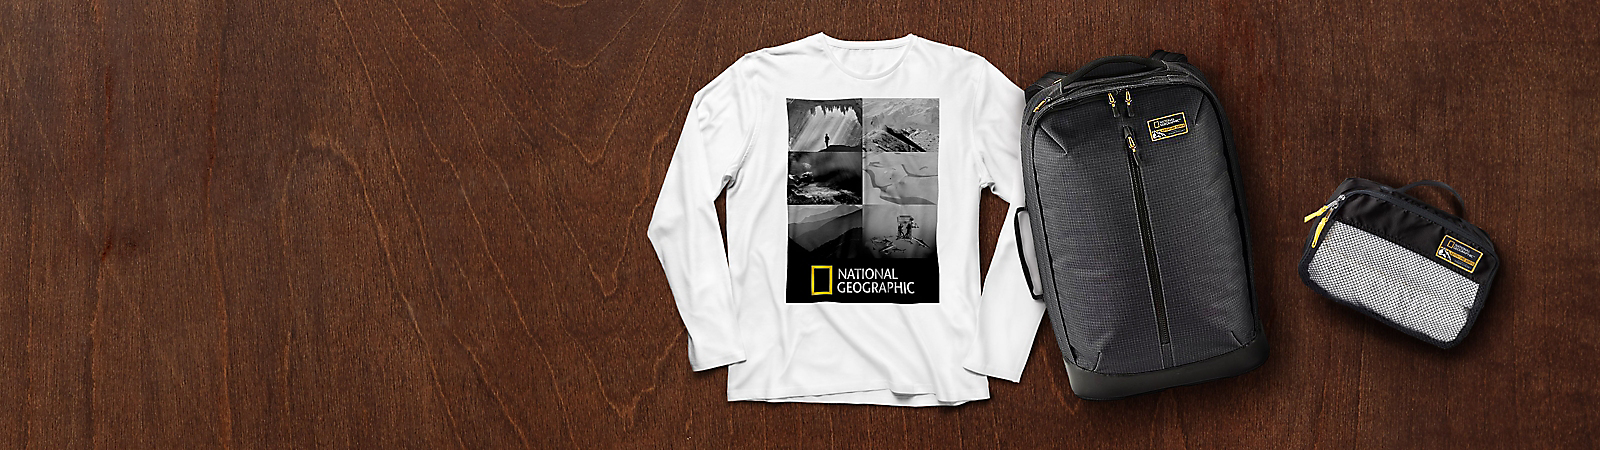 Background image of National Geographic Clothing & Accessories